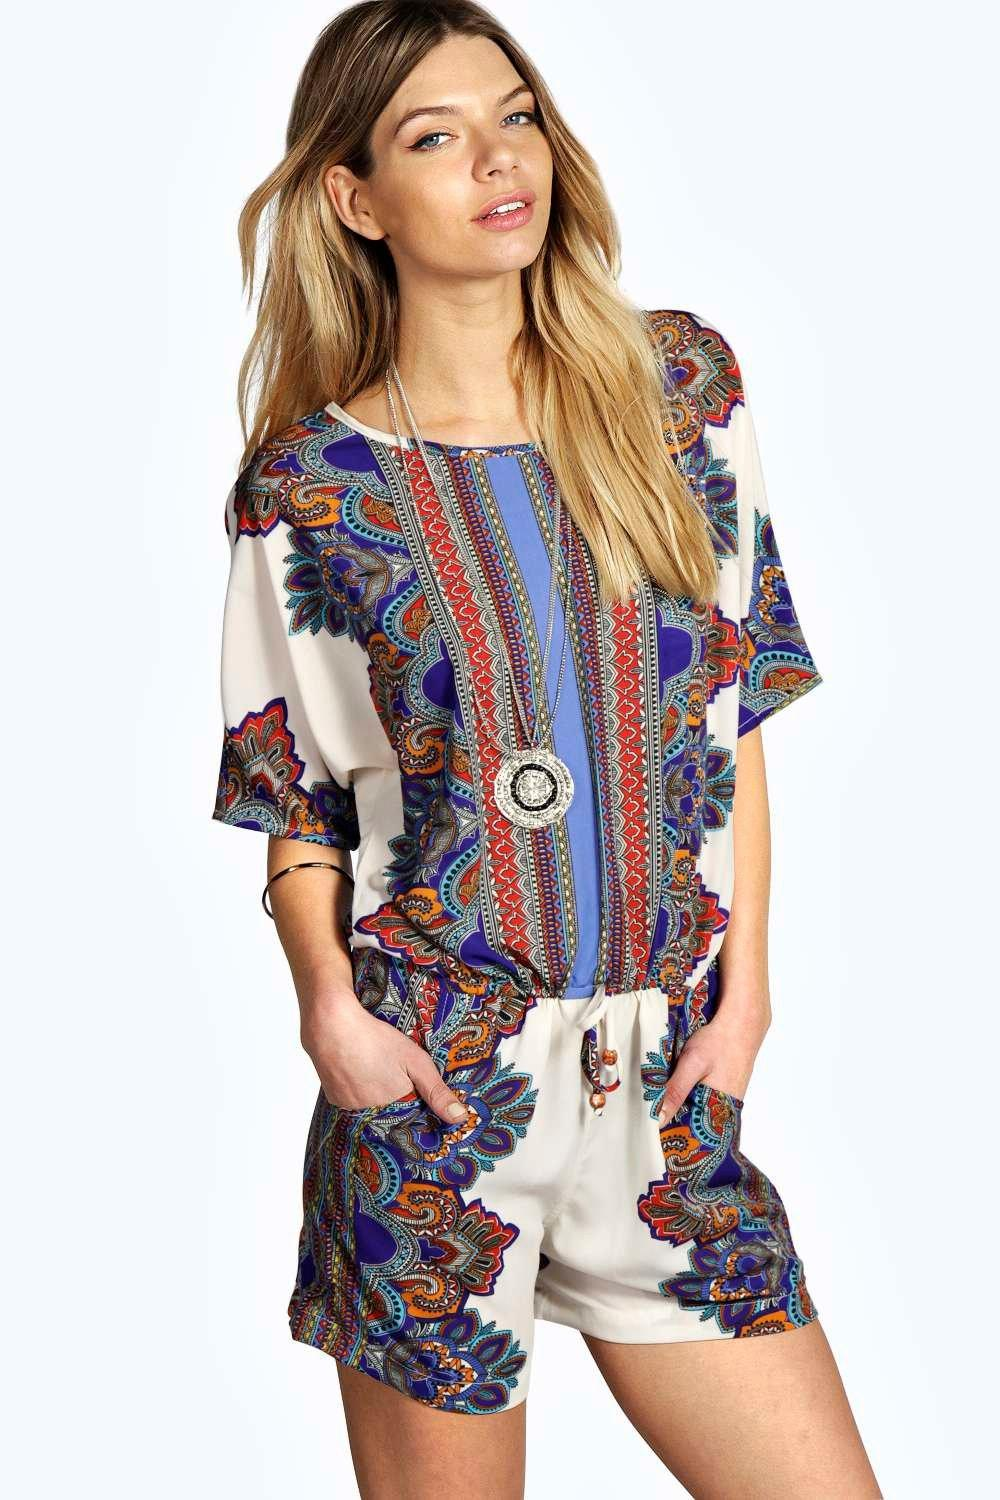 Sarah Paisley Border Print 3/4 Sleeve Playsuit